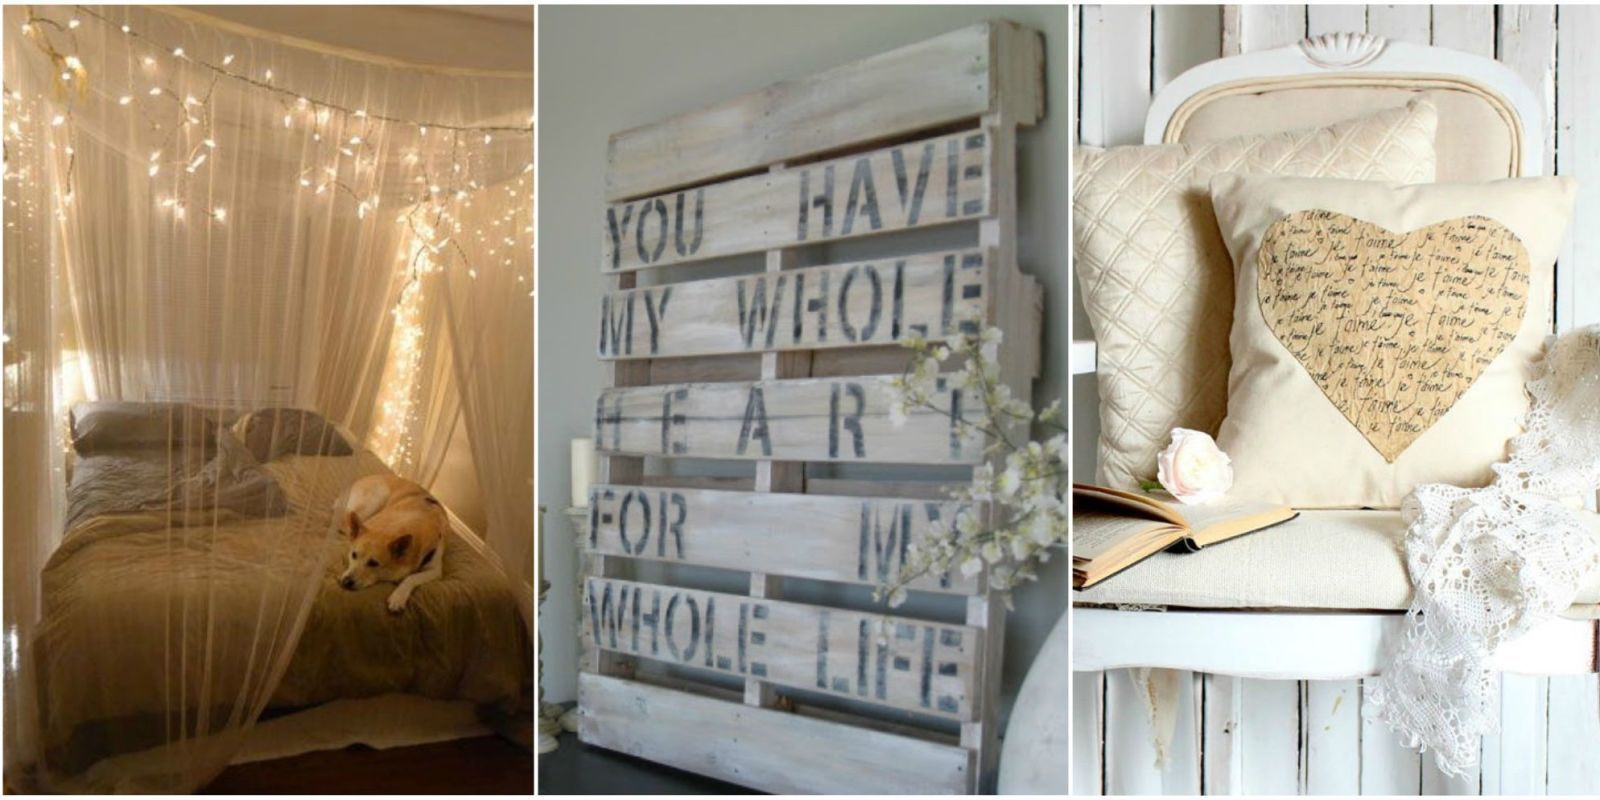 Ordinaire Romantic, Bedroom, Decorating Ideas, Shabby Chic